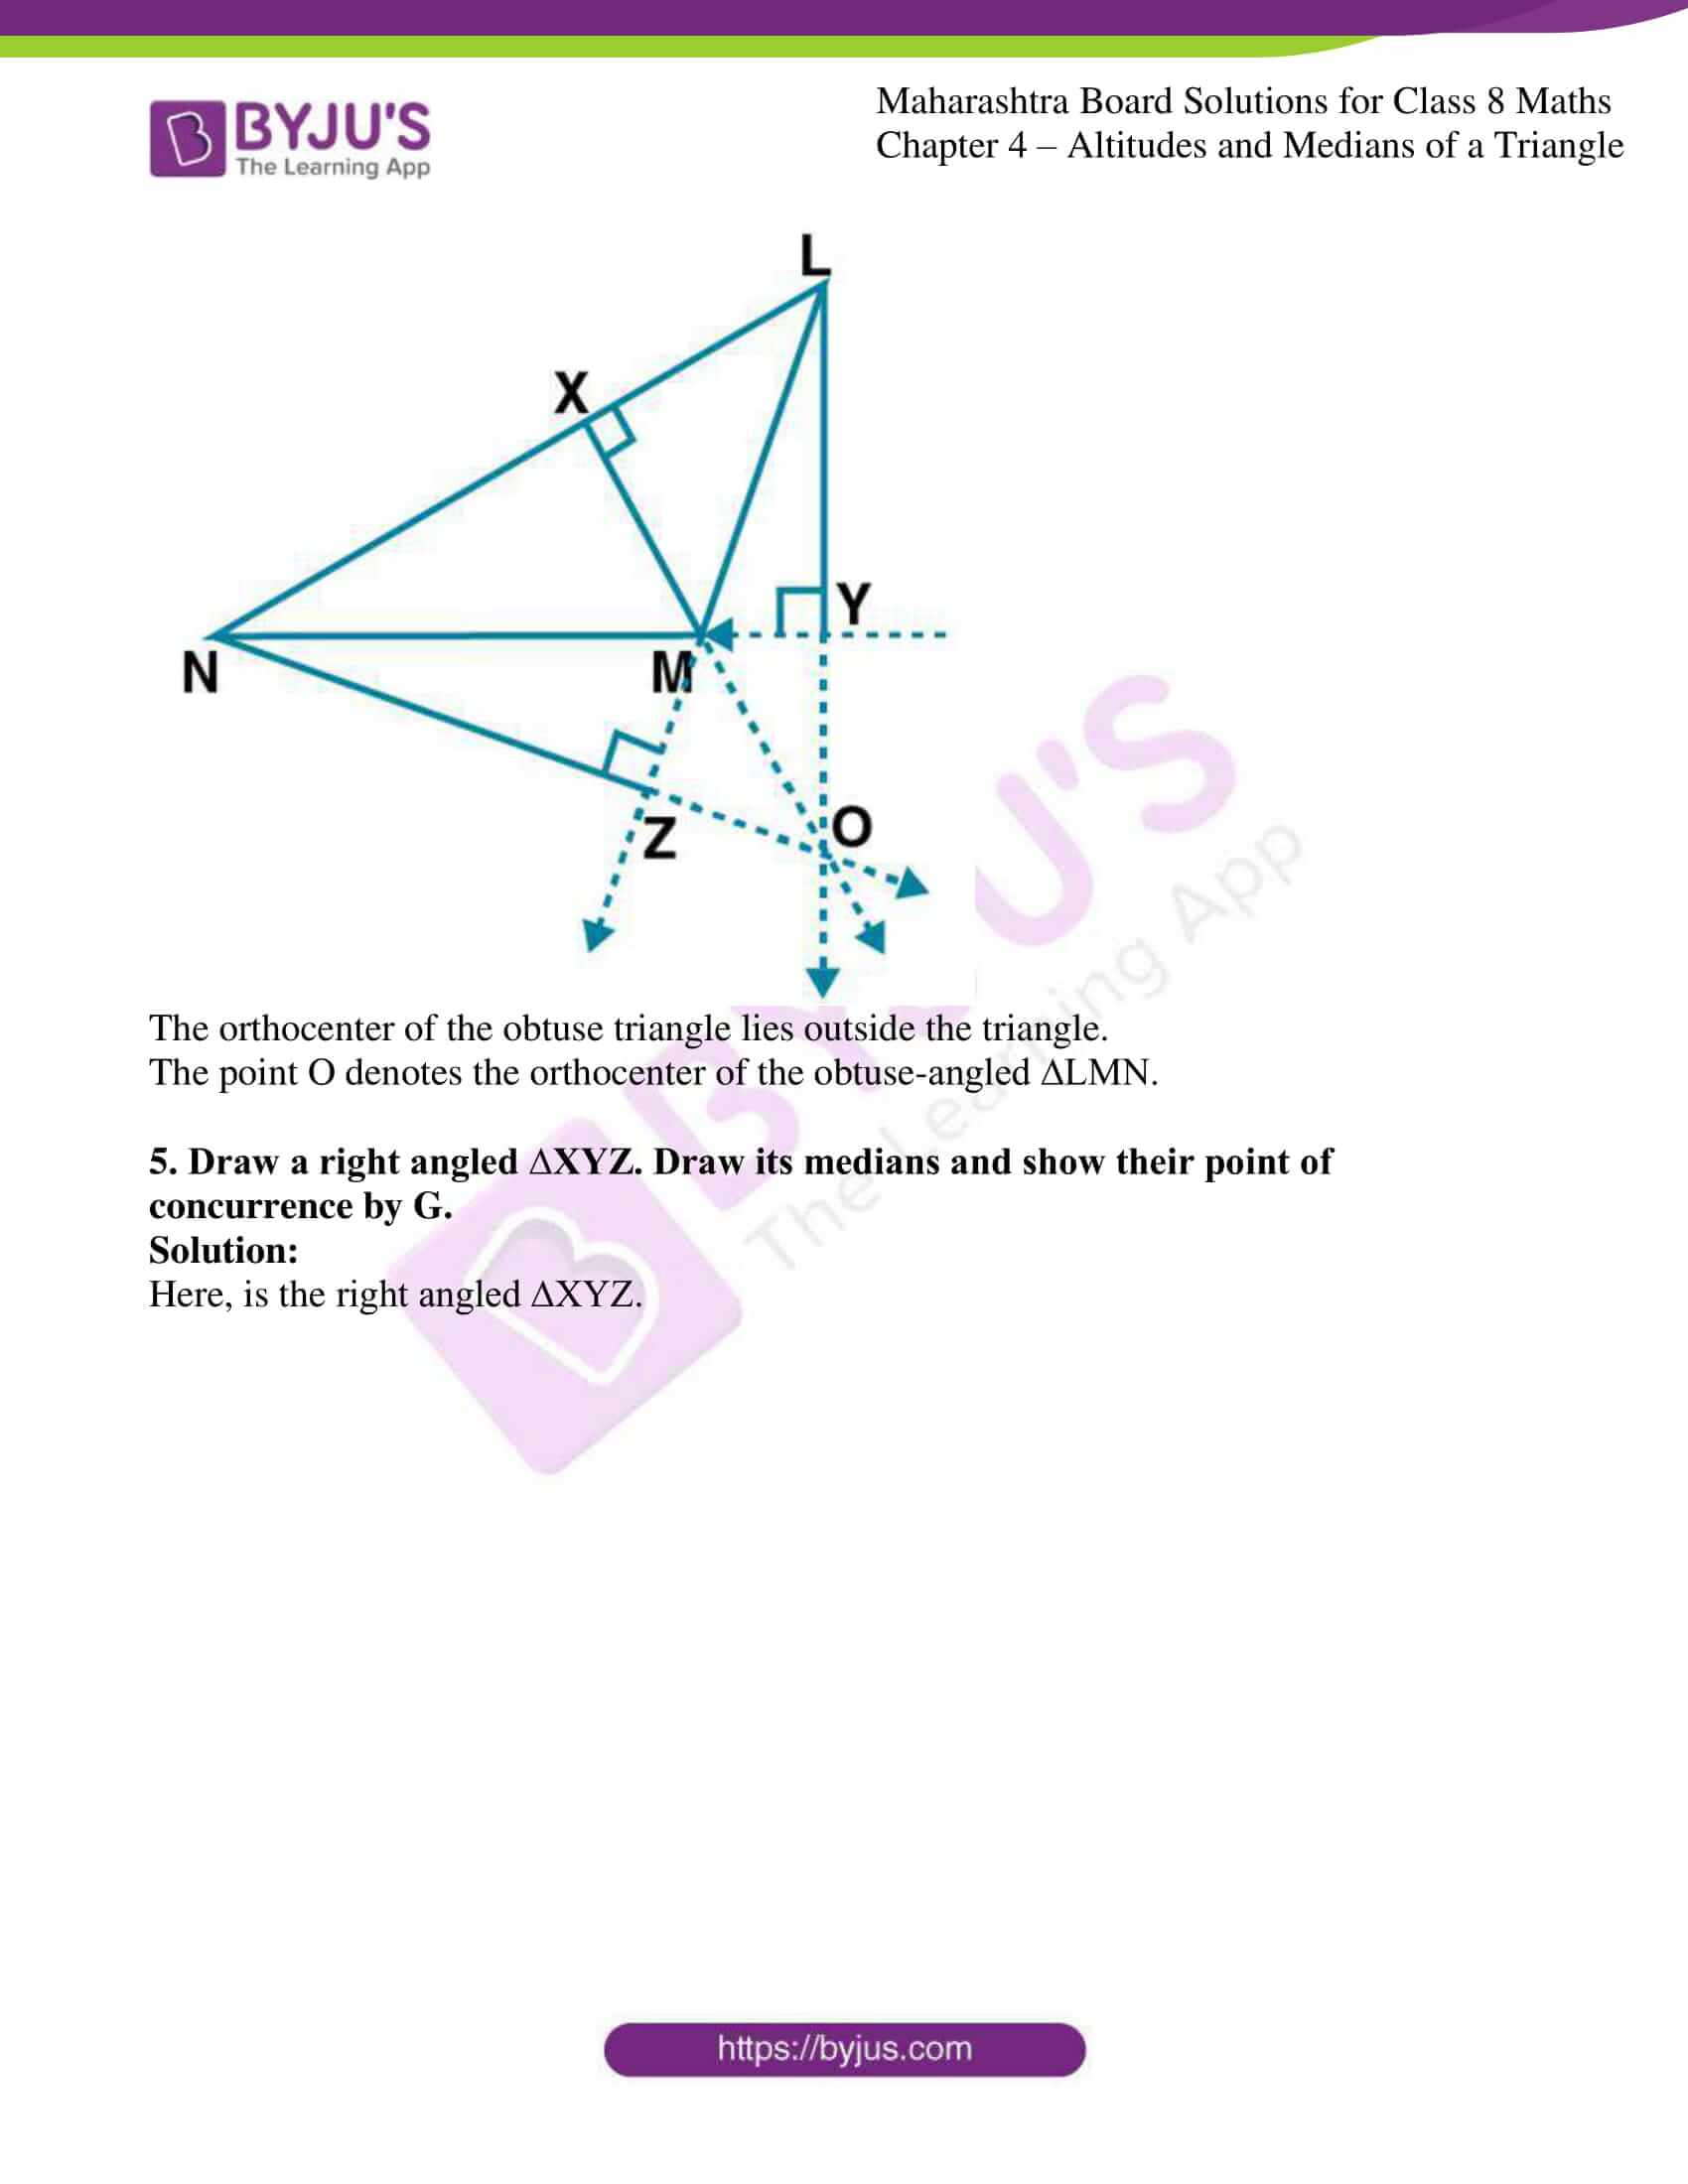 msbshse sol for class 8 maths chapter 4 3